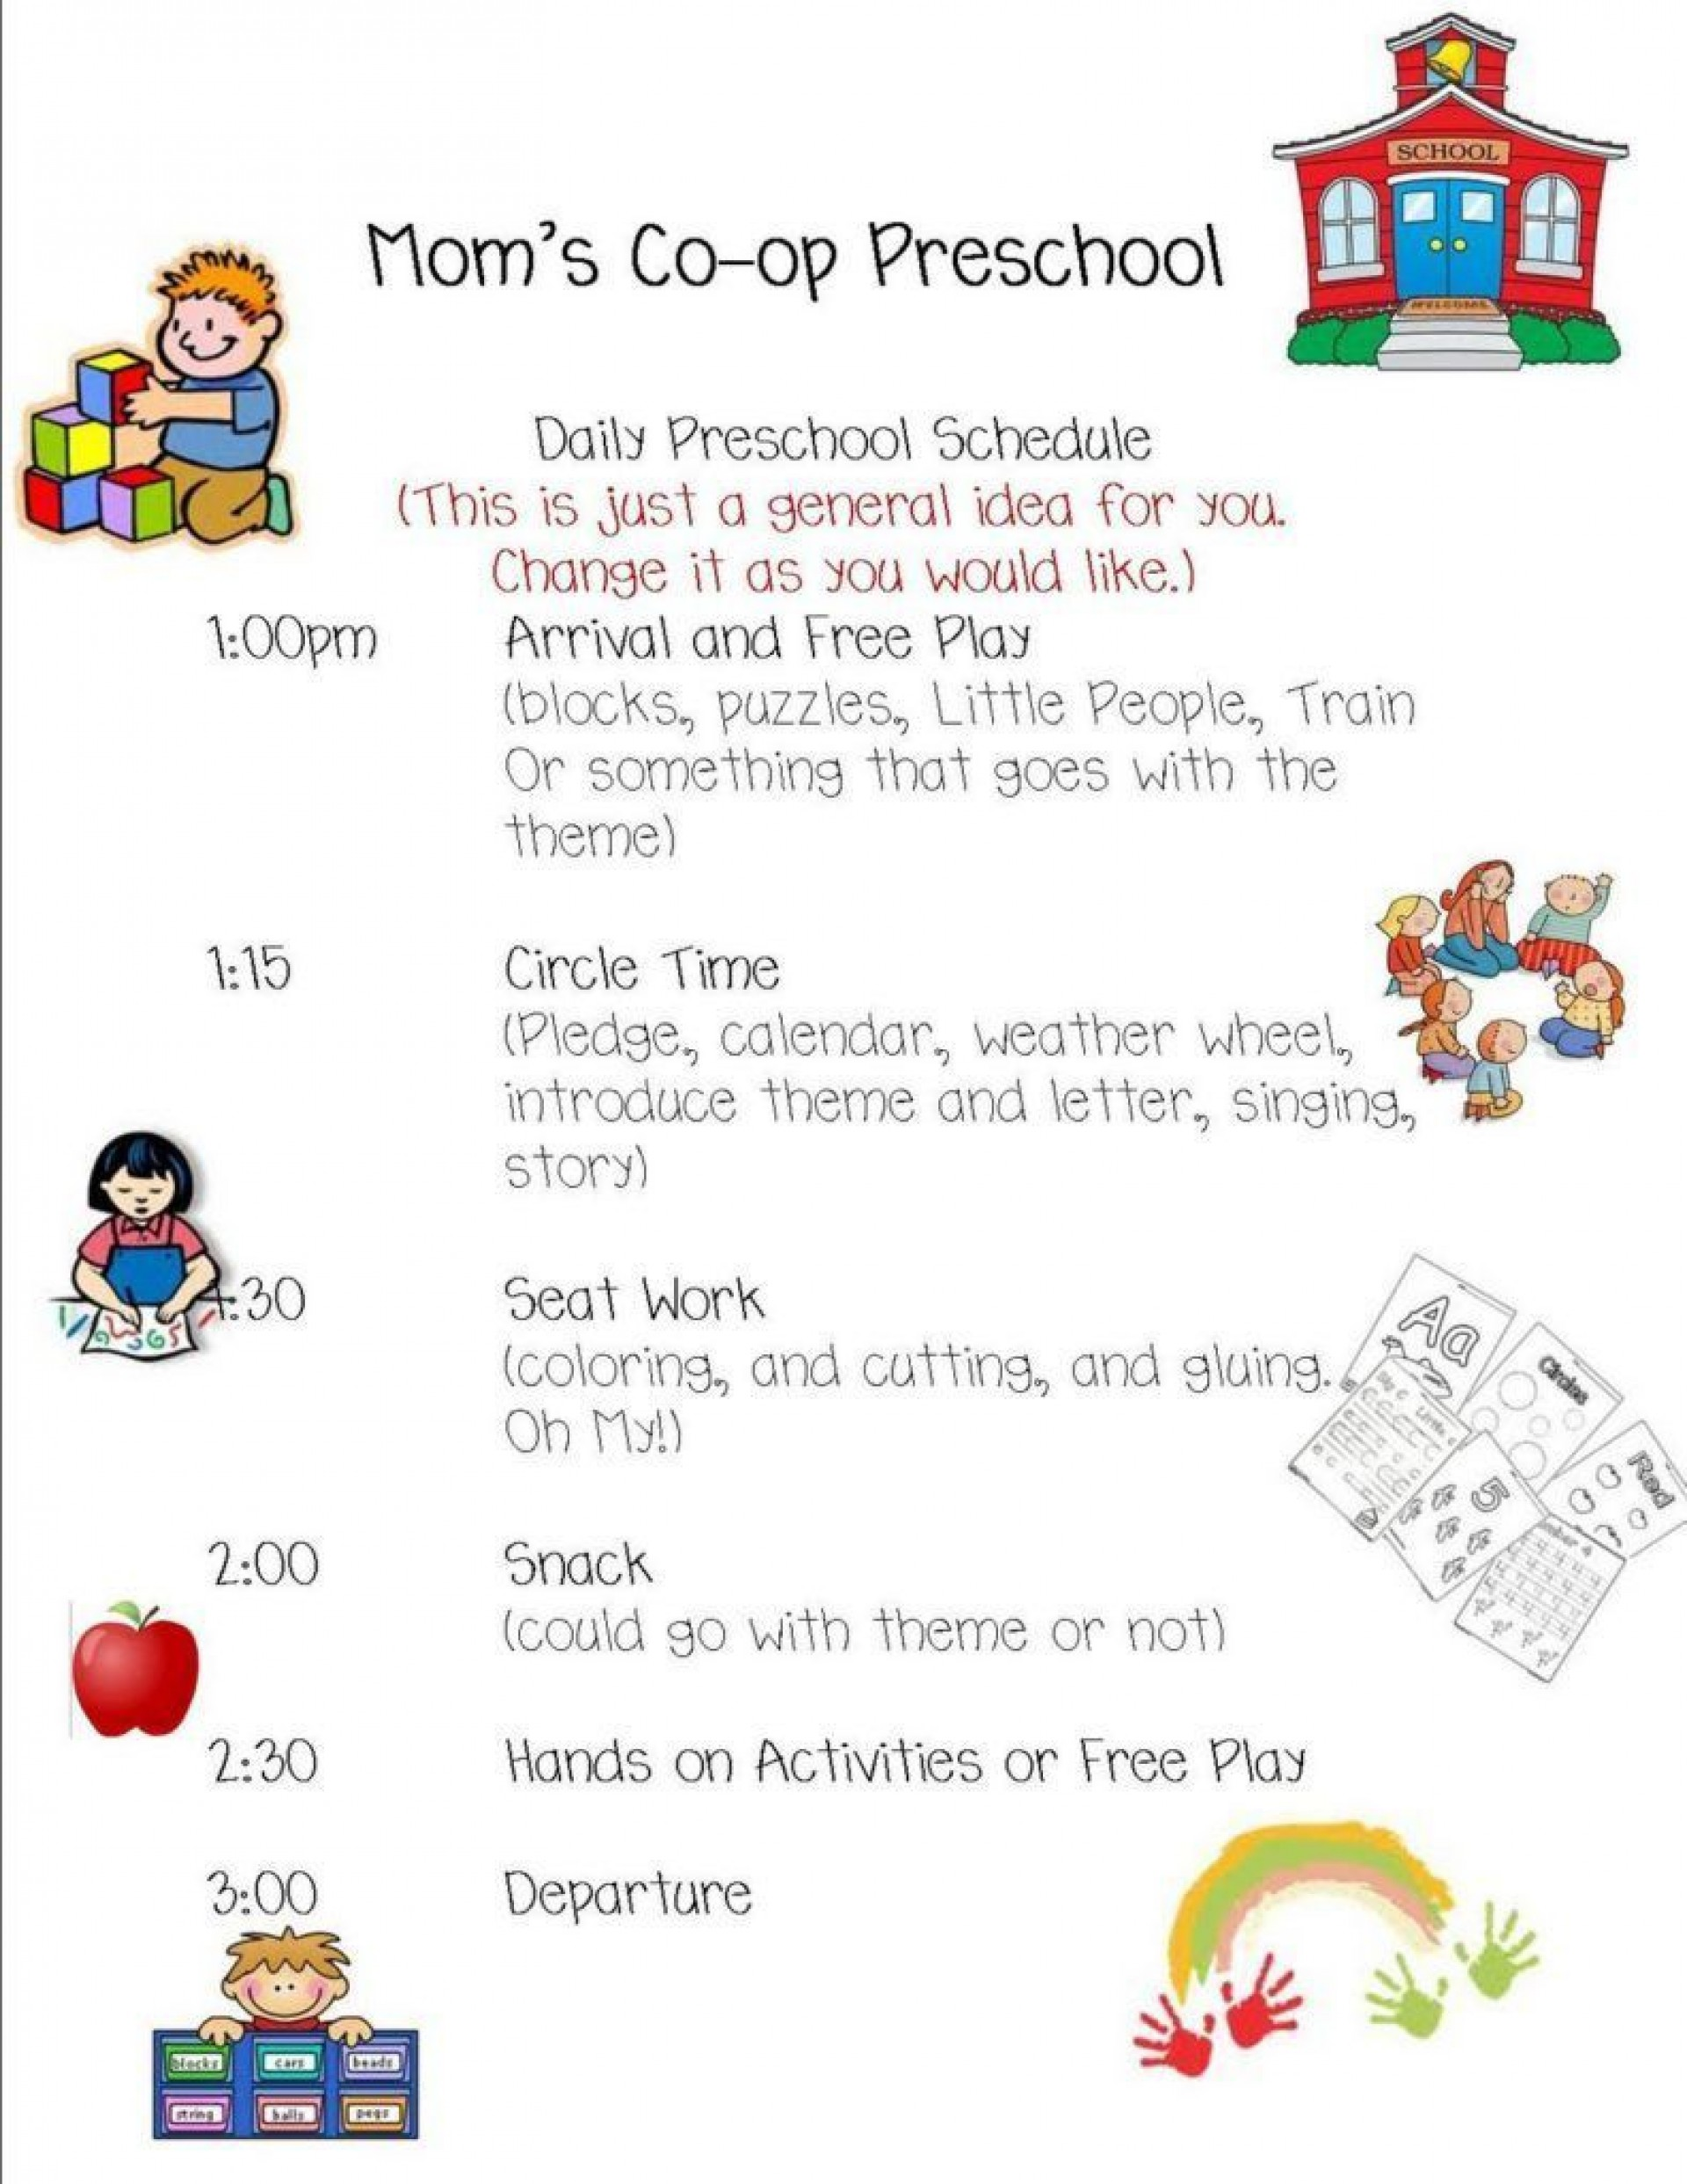 004 Breathtaking Preschool Daily Schedule Template Idea  Planner Routine Plan1920